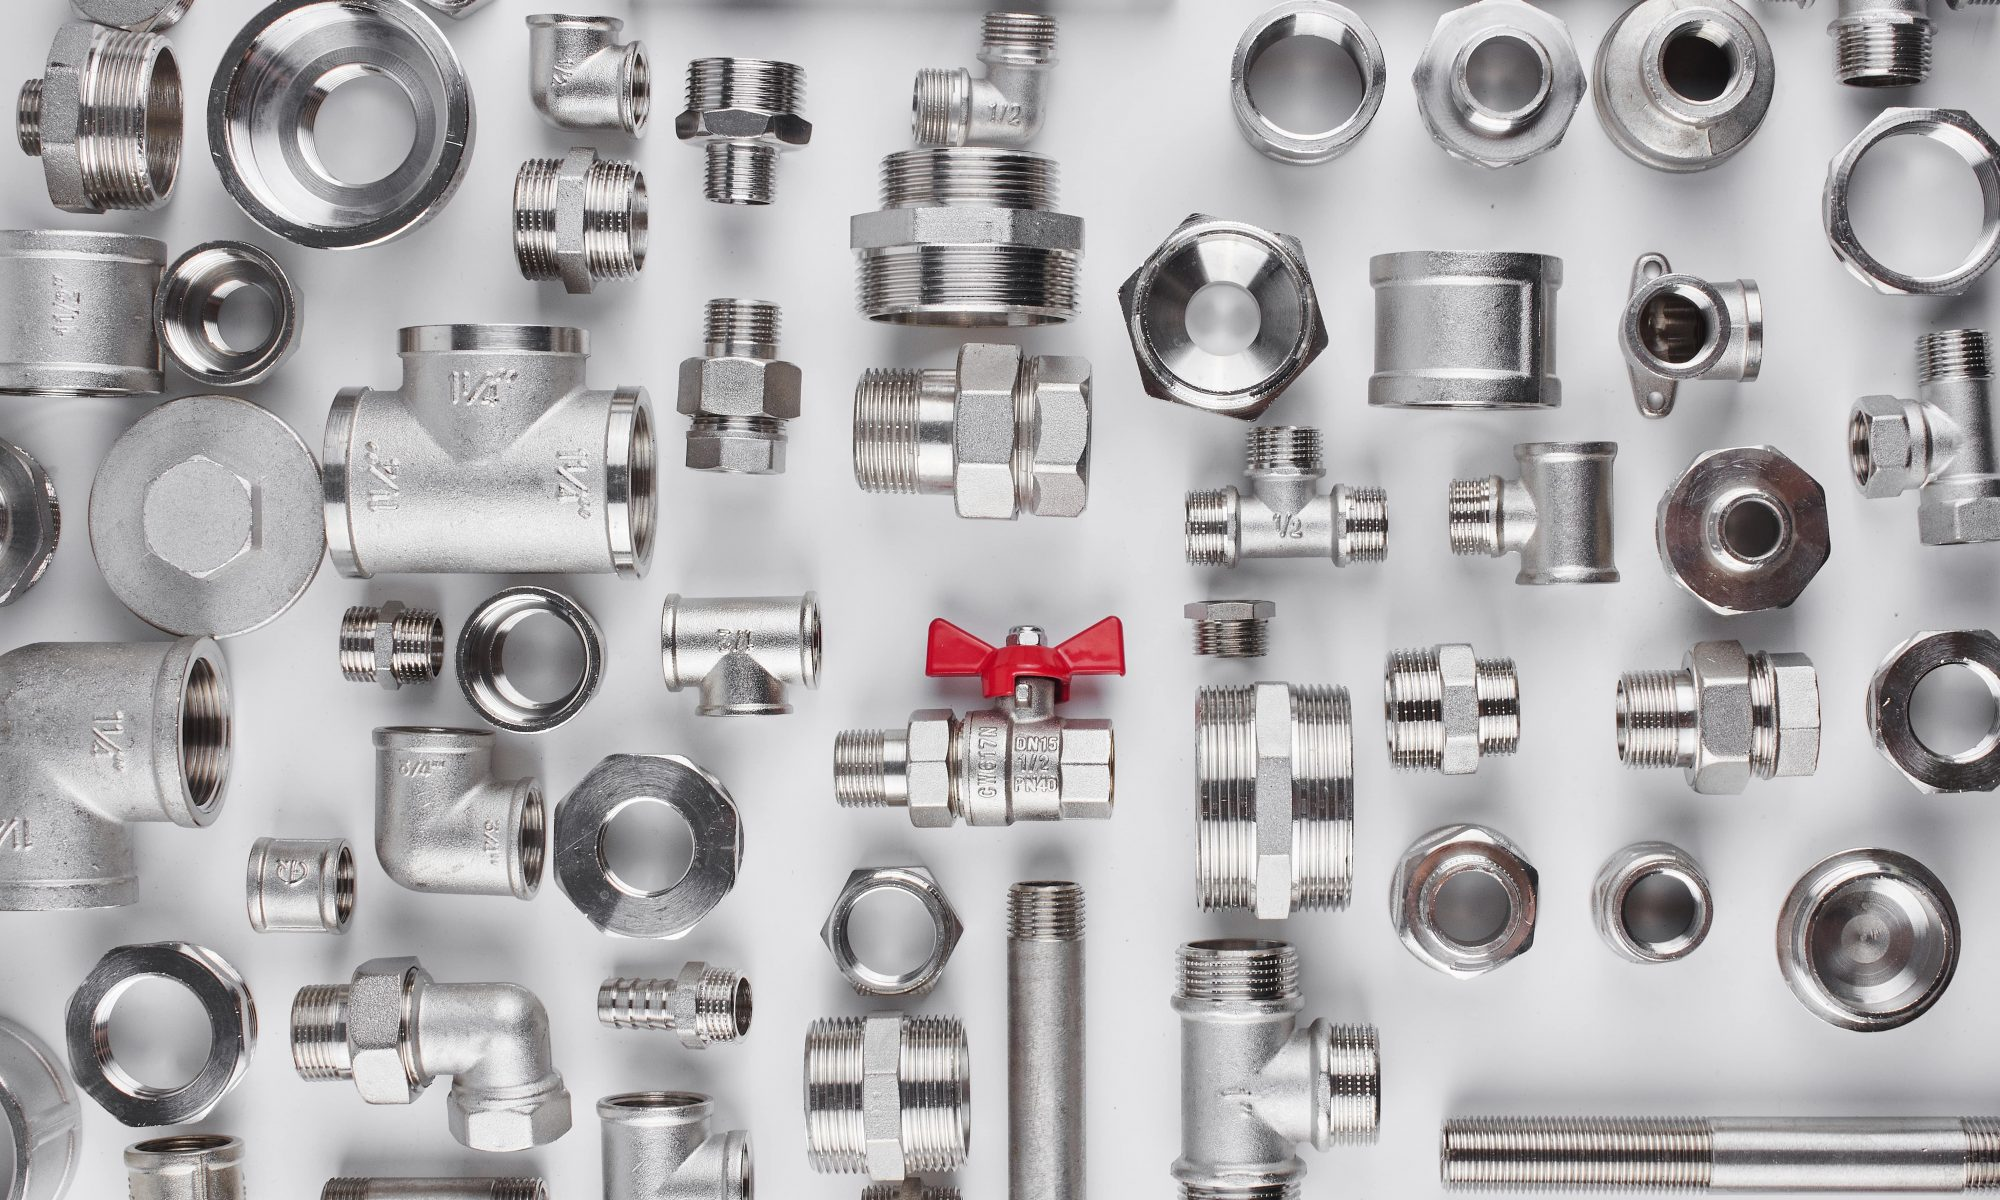 All your plumbing and fixture needs at wholesale prices